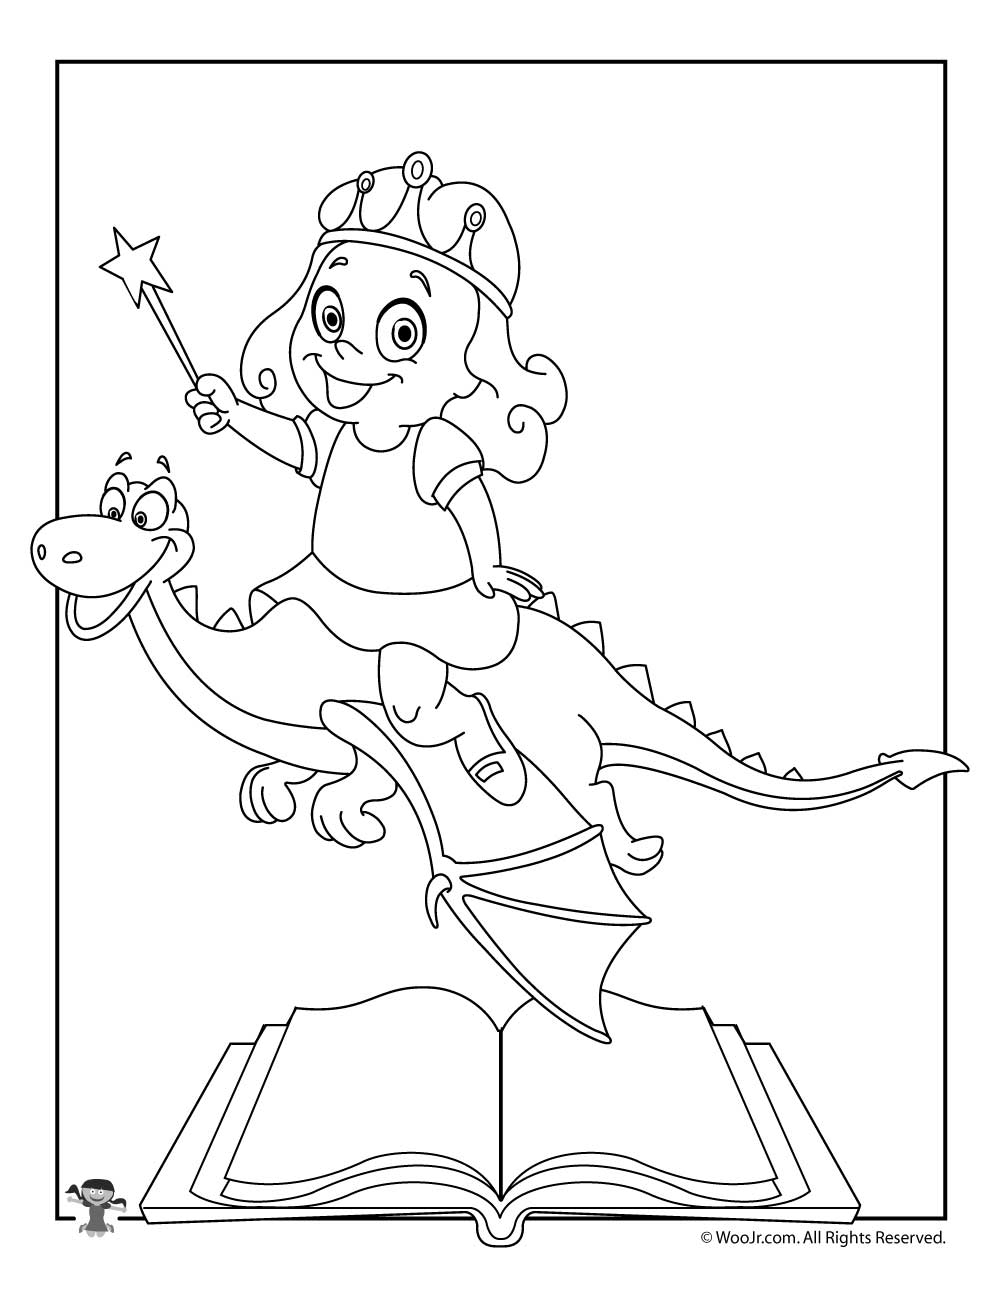 Fairy Tales Coloring Page | Woo! Jr. Kids Activities